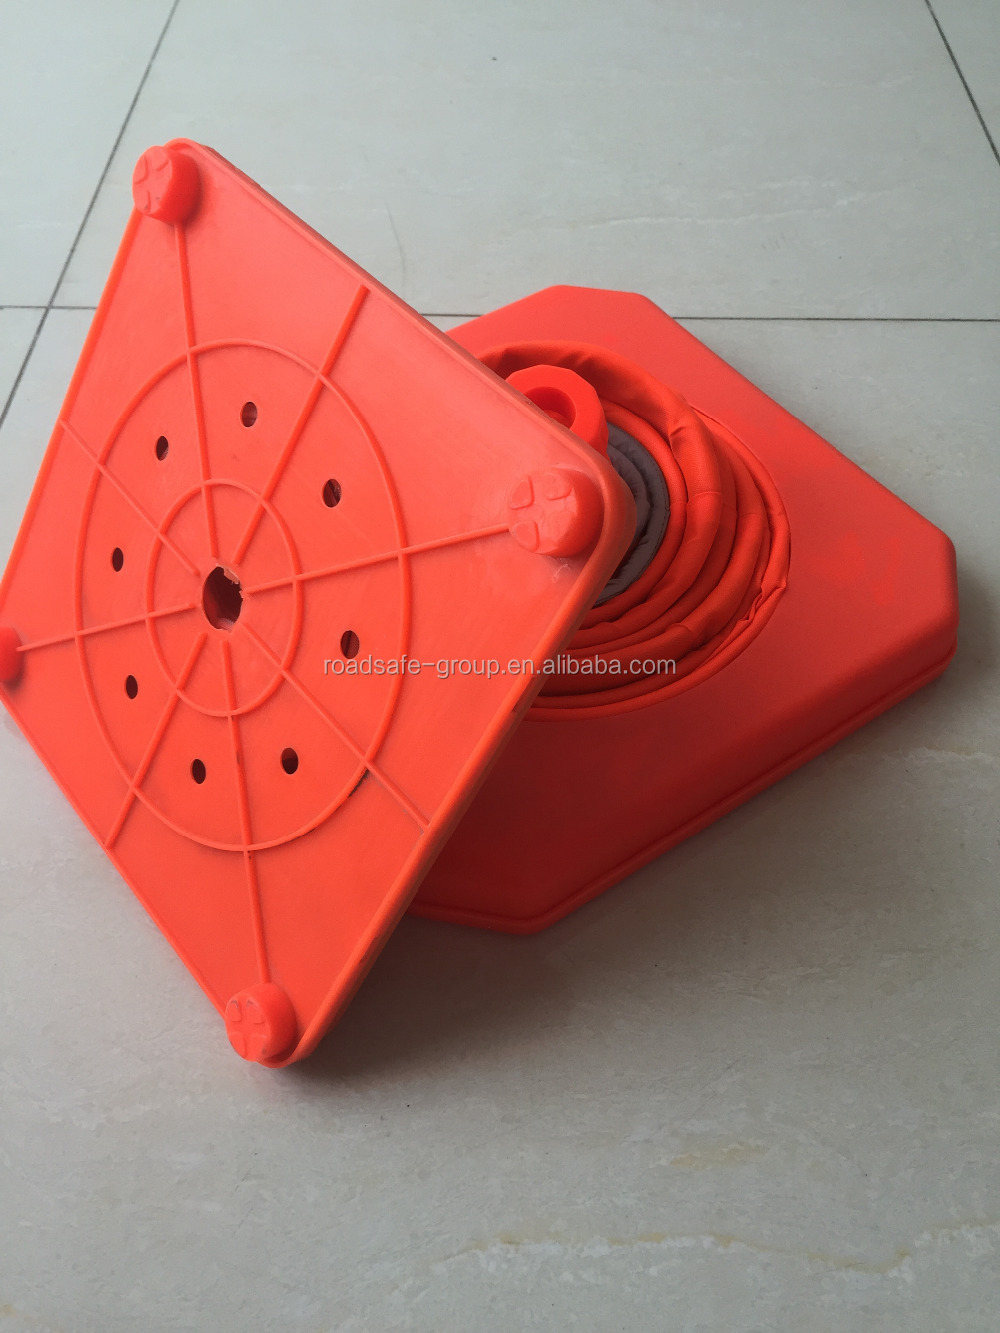 roadsafety equipment traffic cone traffic spikes